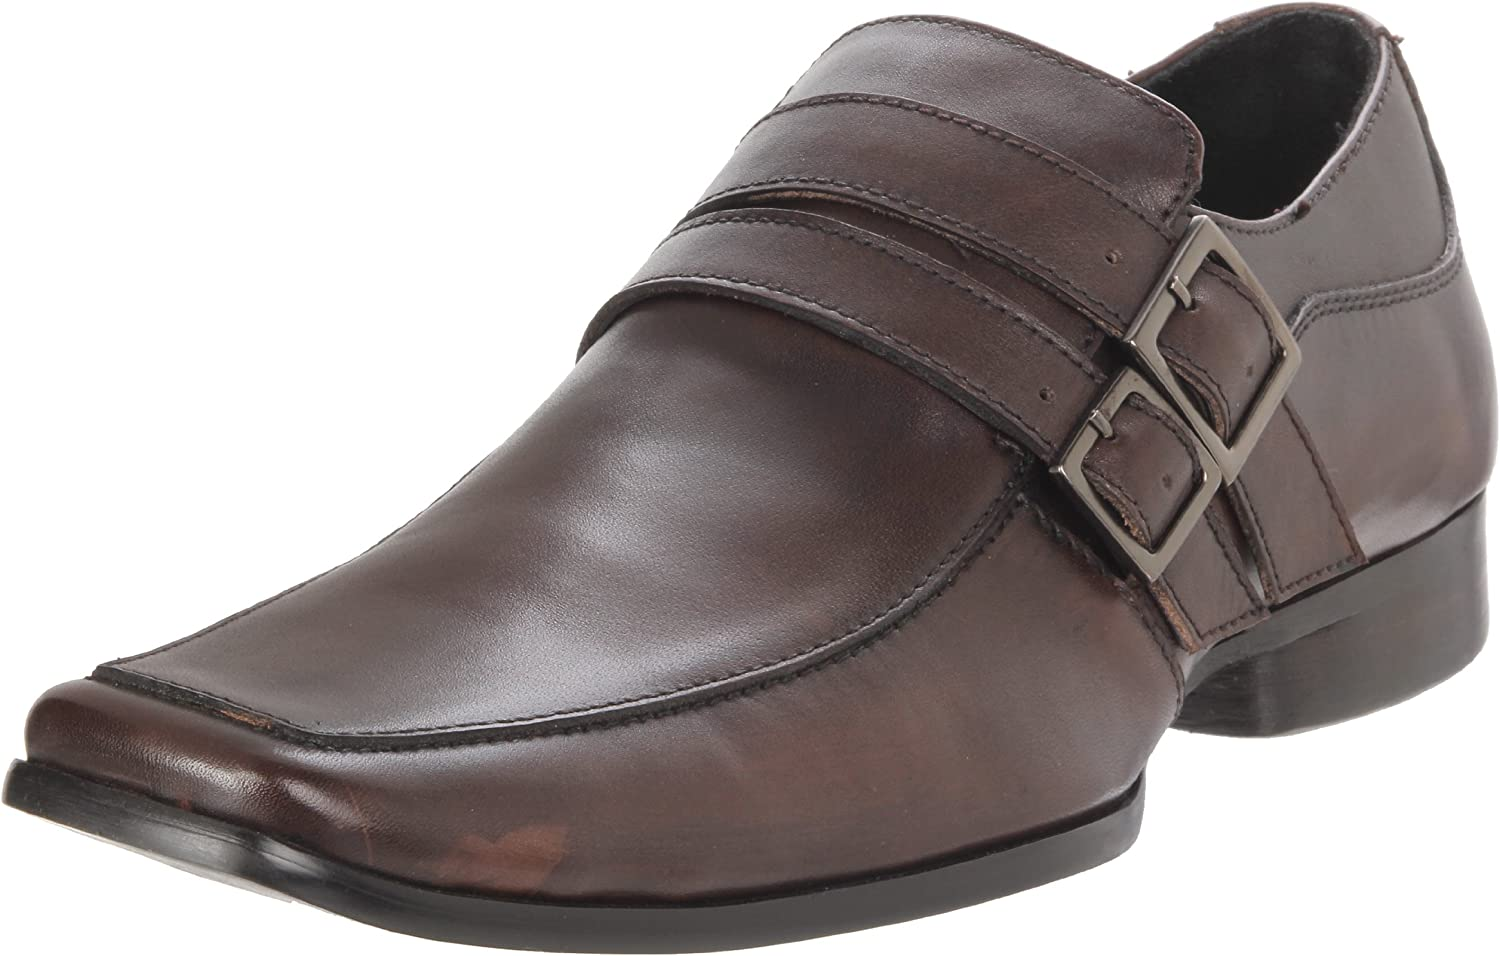 Kenneth Cole REACTION Online limited favorite product Men's Noteice Final Boot